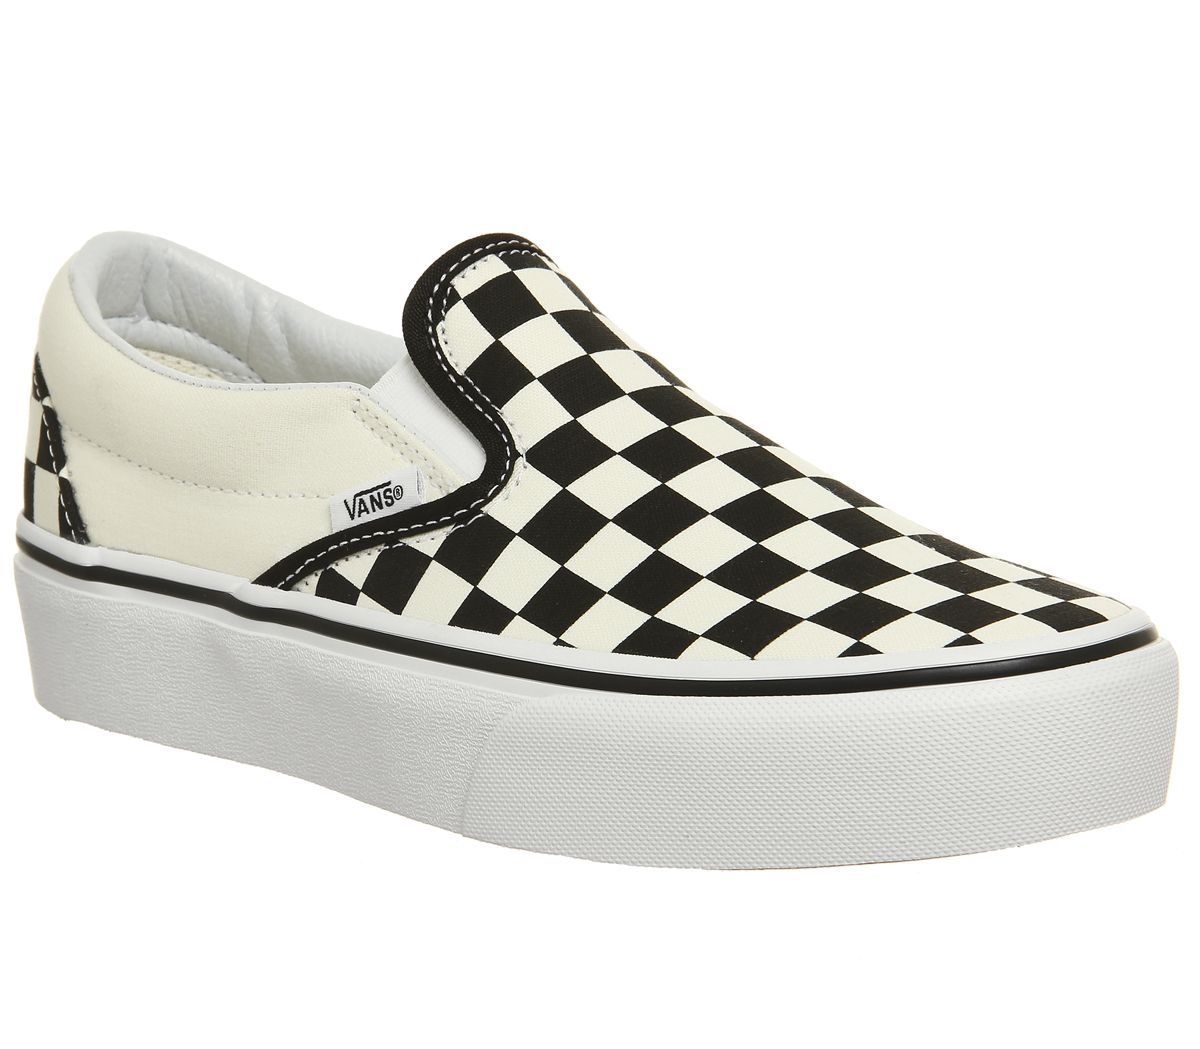 a829478b8c Vans Classic Slip On Platform Trainers Black White Checker - Hers ...